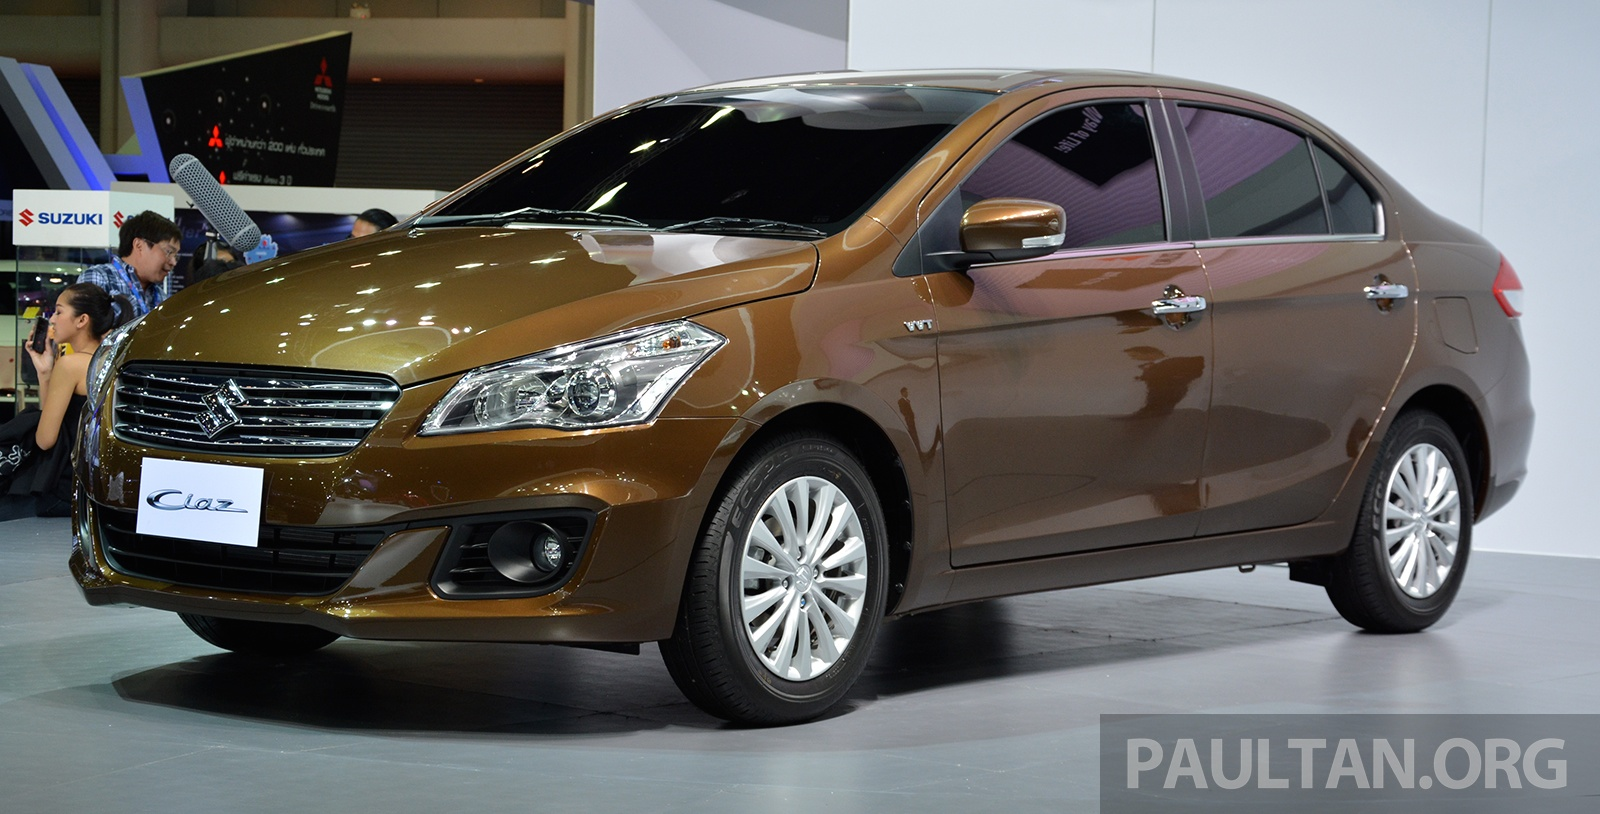 GALLERY: Suzuki Ciaz 1.25L Eco Car At Bangkok 2015